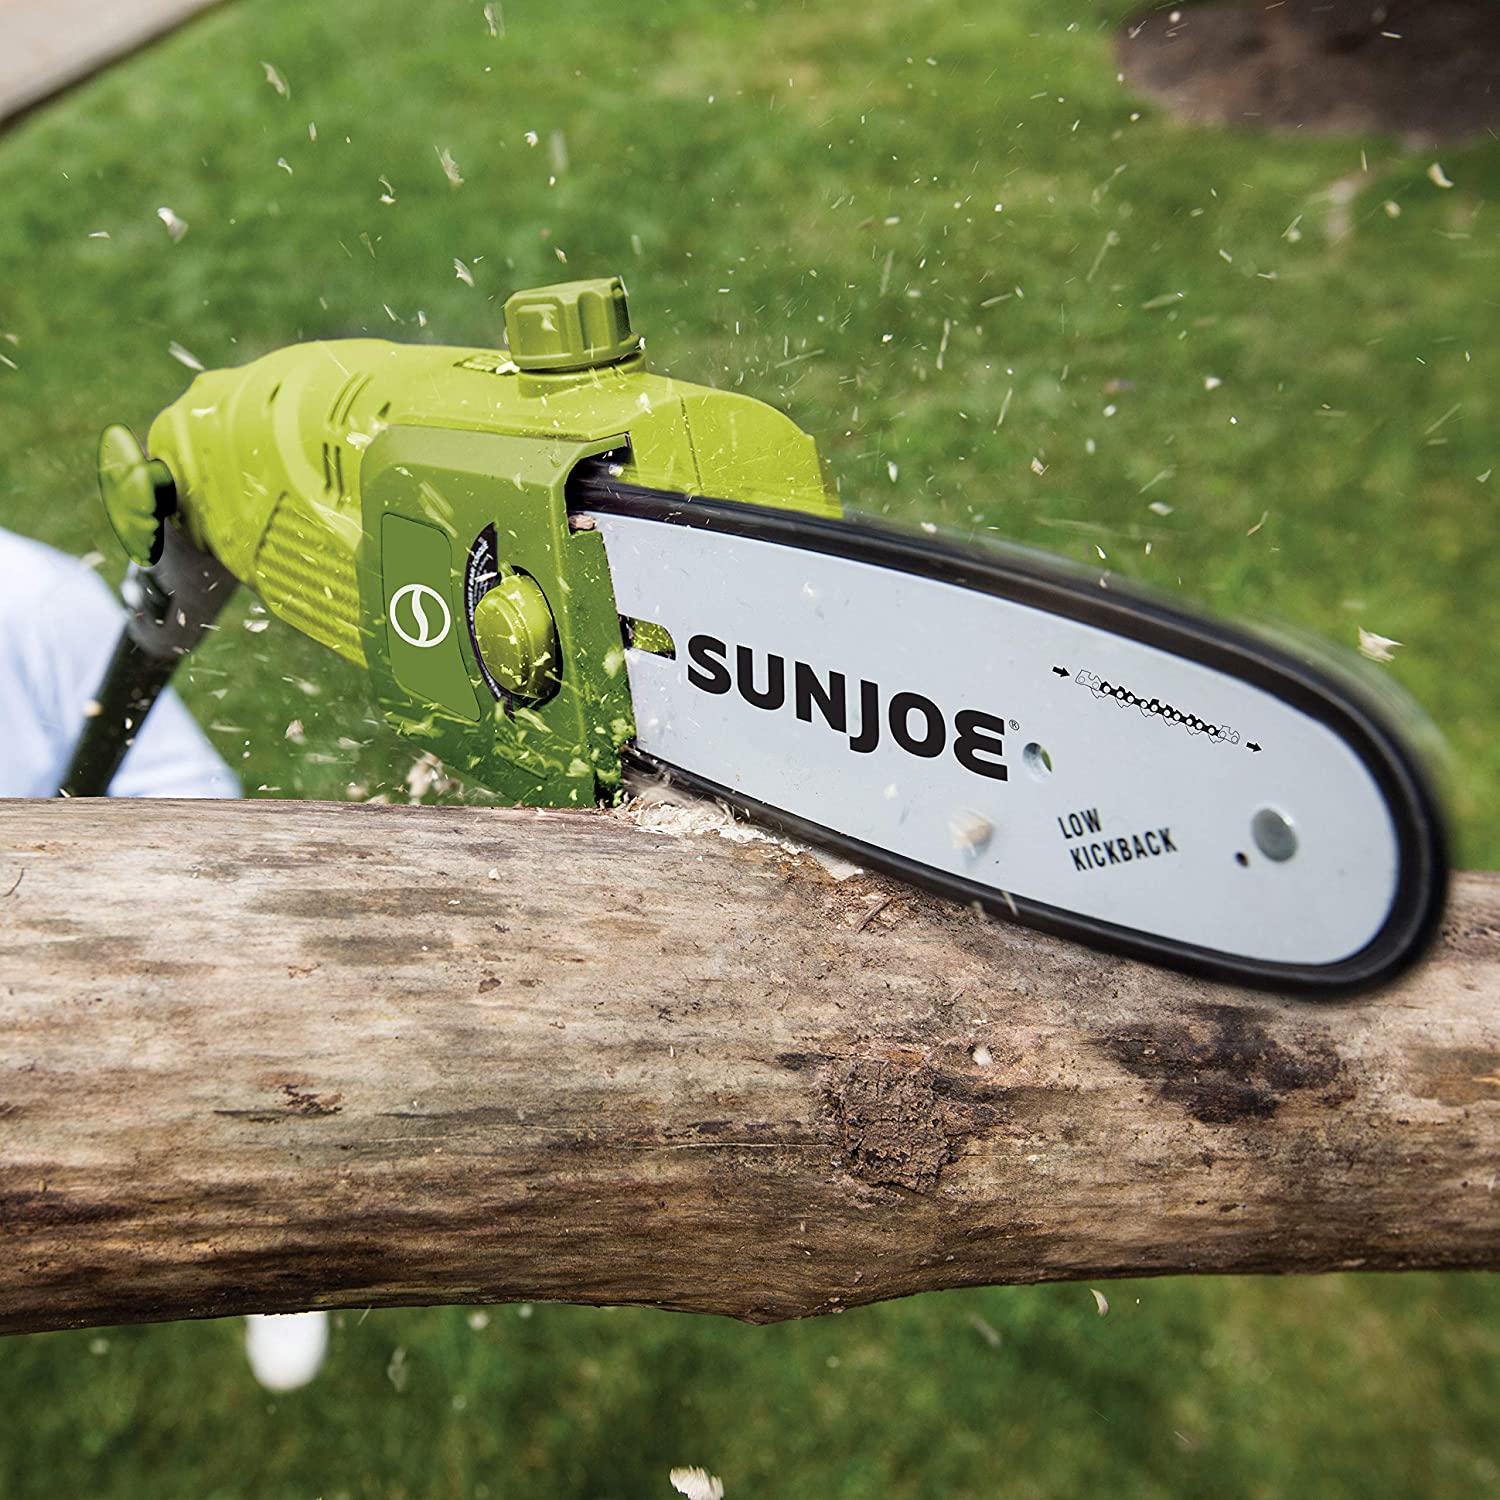 Sun Joe SWJ803E Chainsaws product image 6